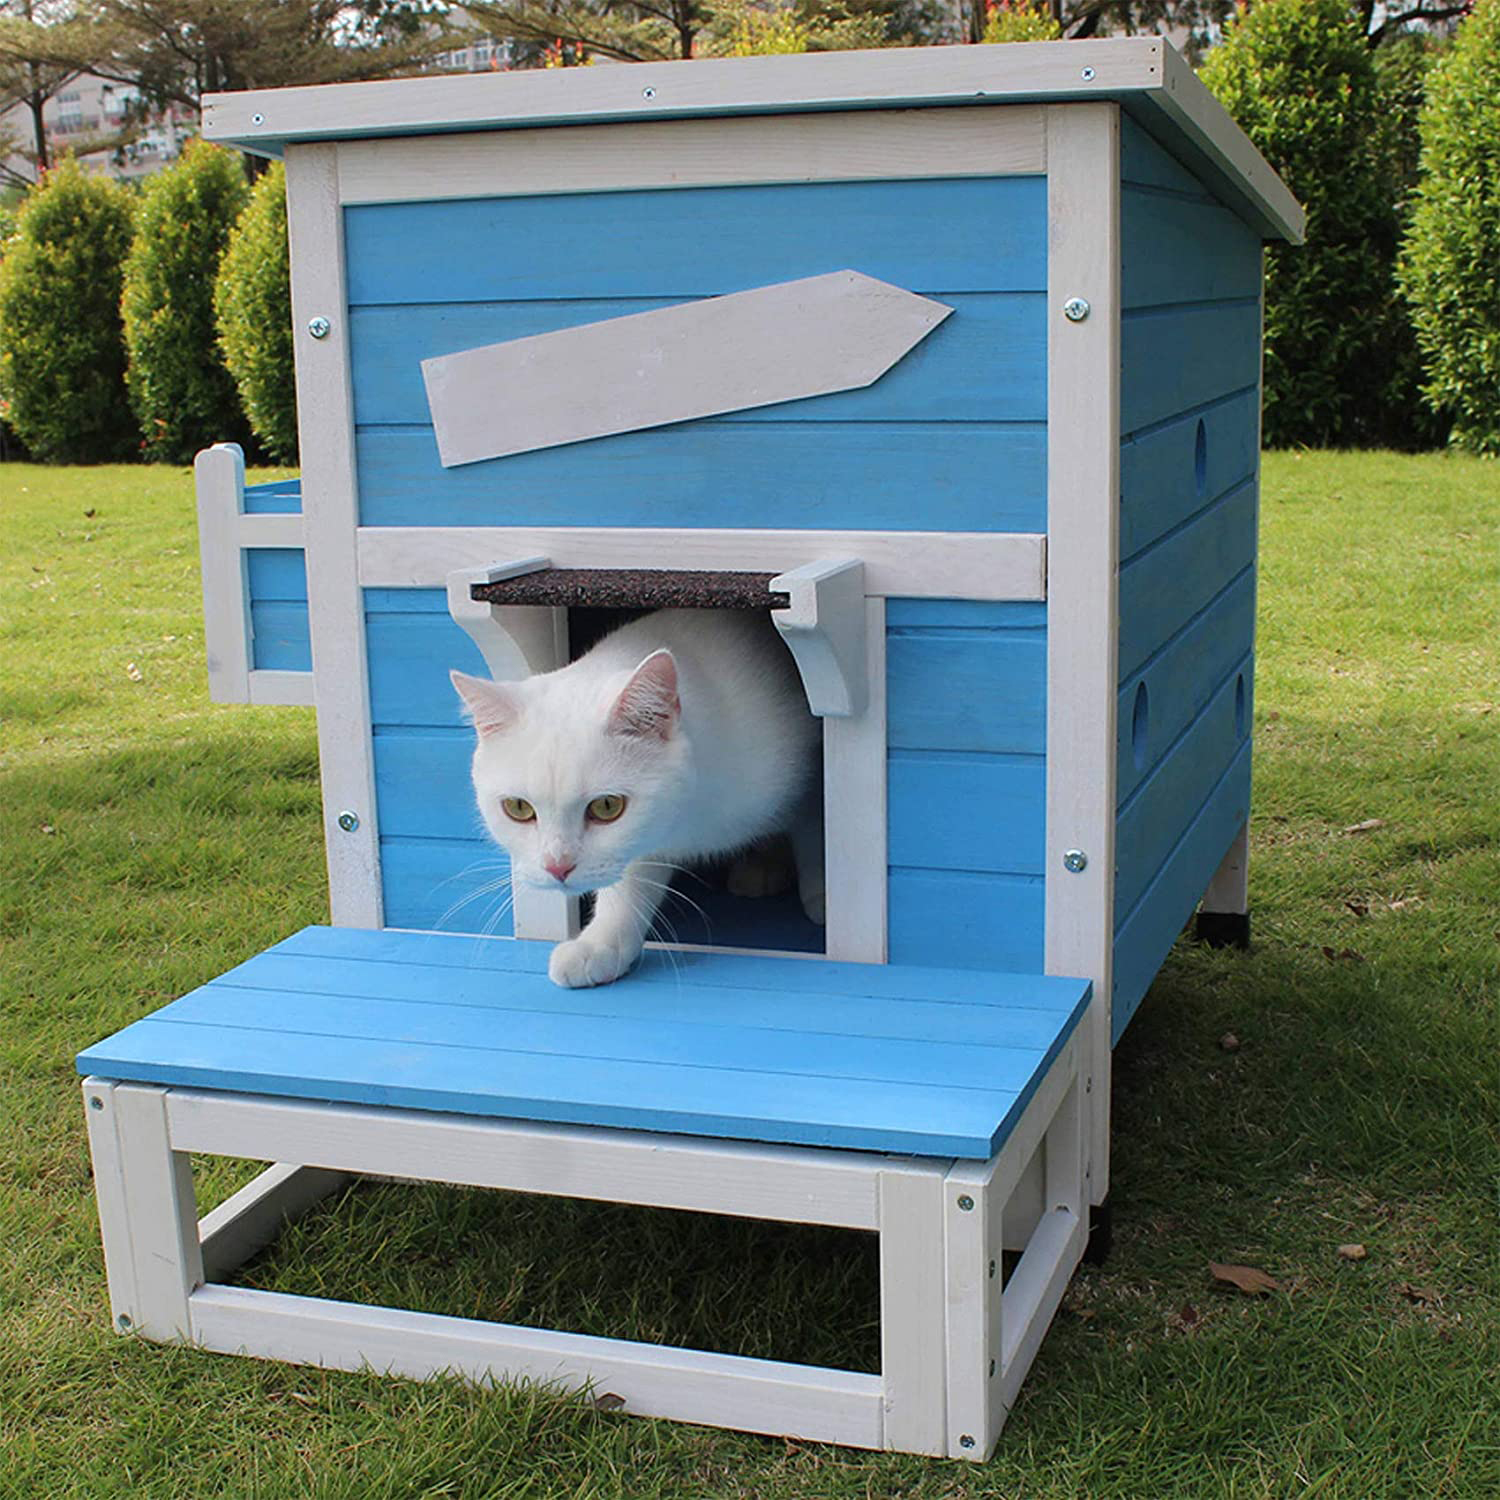 rockever-outdoor-cat-shelter-with-escape-door